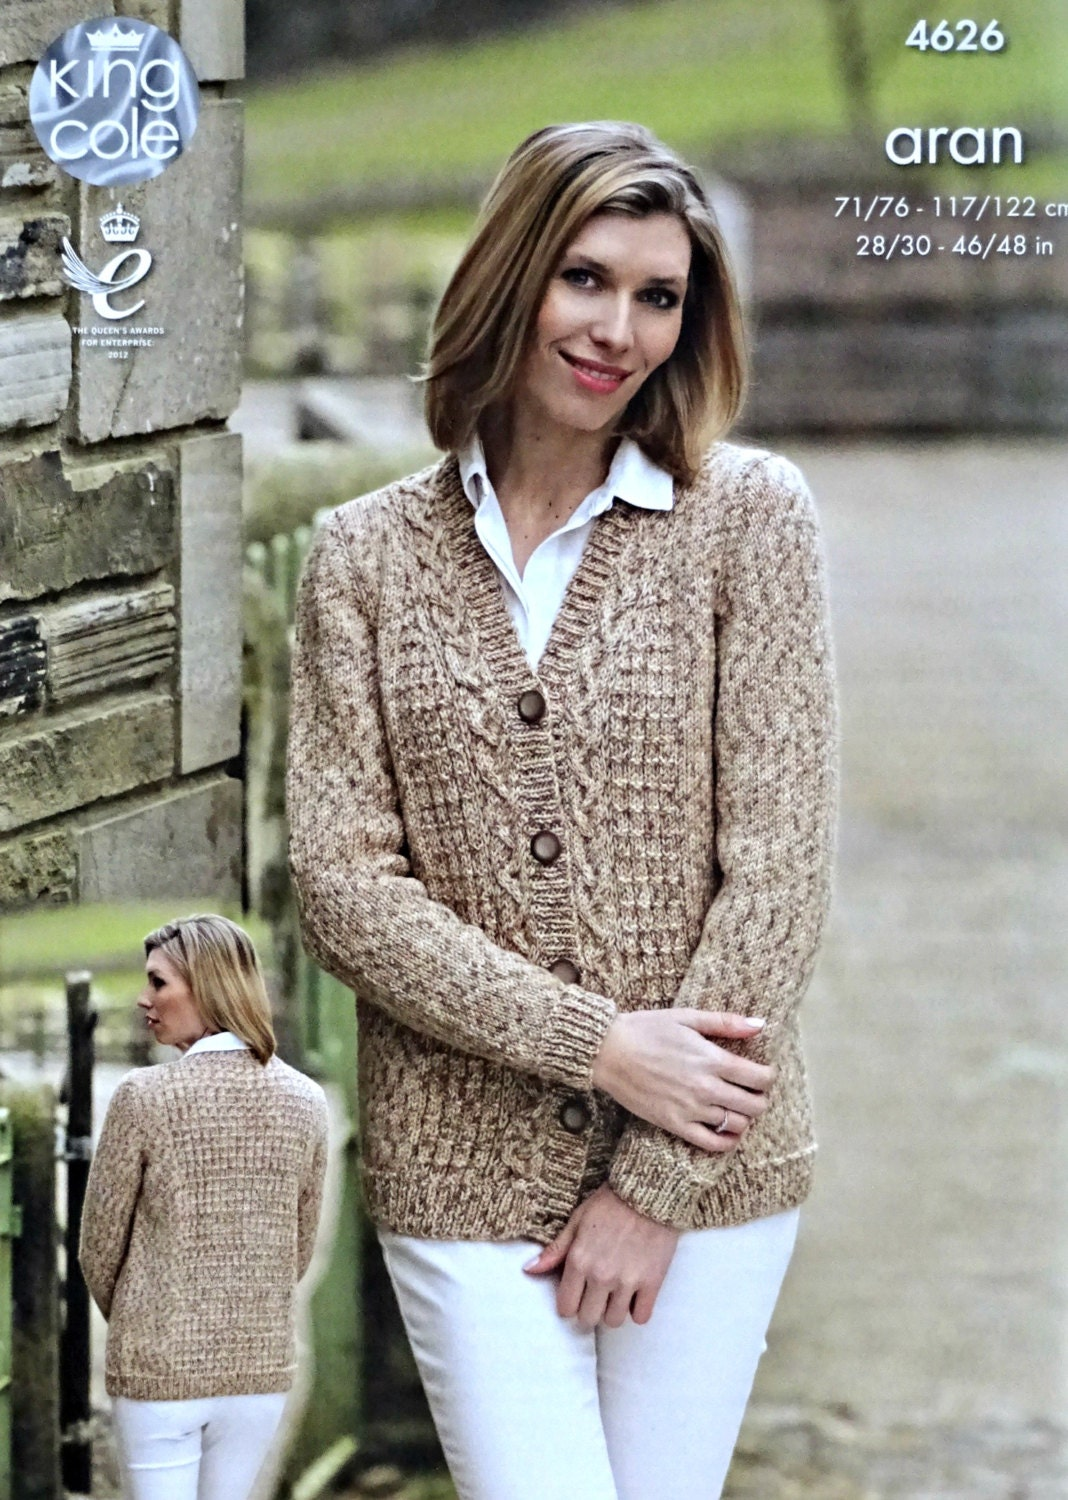 Womens knitting pattern k4626 ladiesmens long sleeve v neck cable womens knitting pattern k4626 ladiesmens long sleeve v neck cable cardigan knitting pattern aran worsted king cole dt1010fo